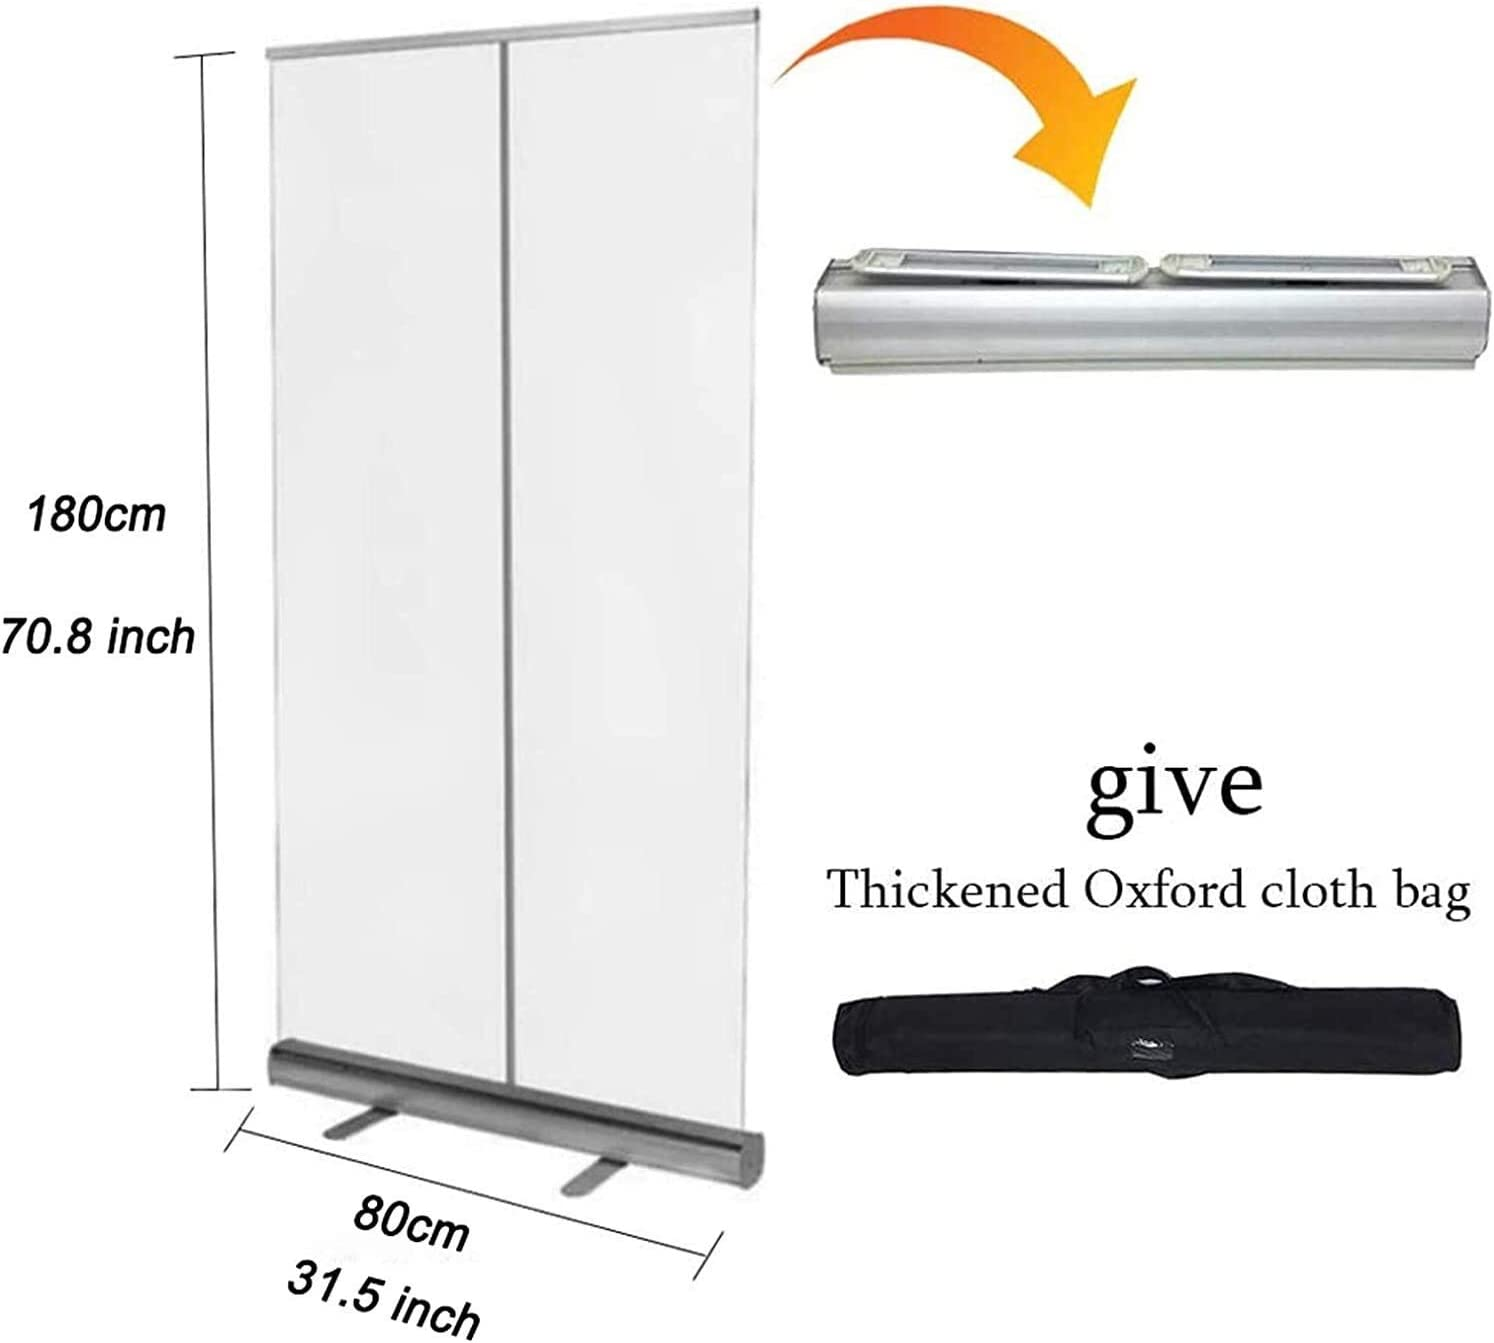 Size : 80180cm (Using in Business) Roll up Banner Floor Standing Sneeze Guard Portable Roll Up Banner with Clear Film Protective Shield for Office Salons Clinics,Stores Restaurants Banner Stand